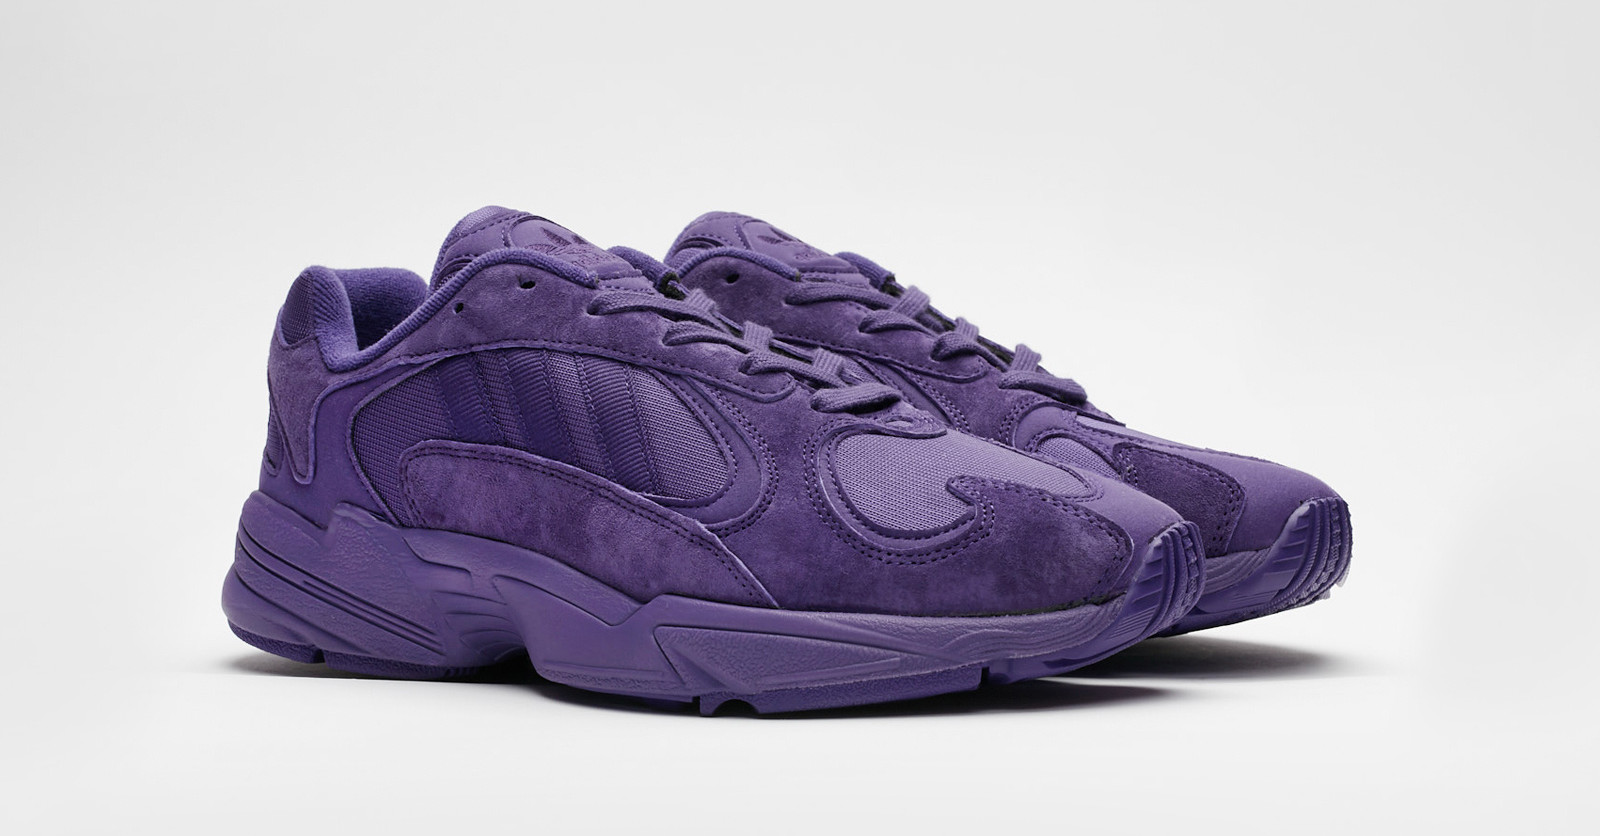 8eaa46f10faff Retailer Sneakersnstuff taps funk legend George Clinton to help unveil its  new Adidas Yung-1 exclusive pack. Find the release date and more info here.